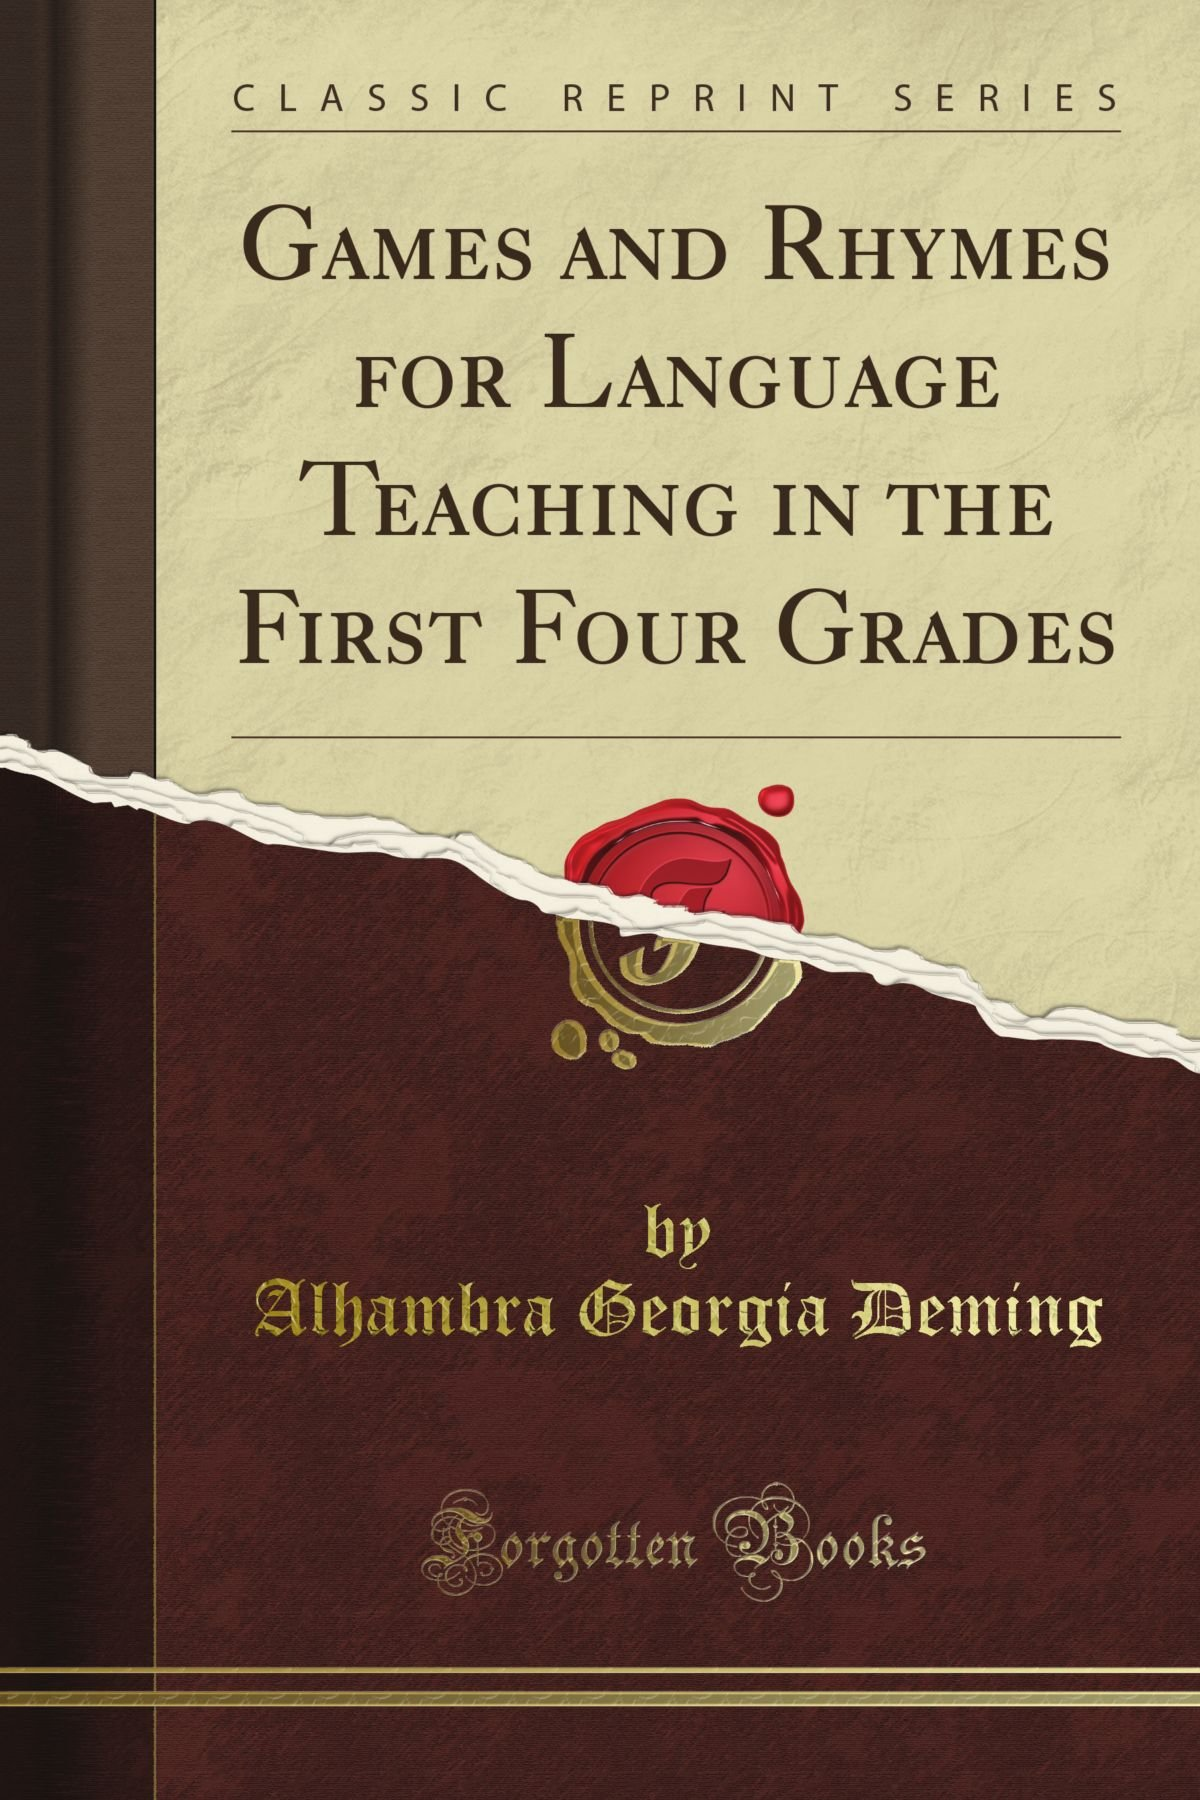 Games and Rhymes for Language Teaching in the First Four Grades (Classic Reprint) by Forgotten Books